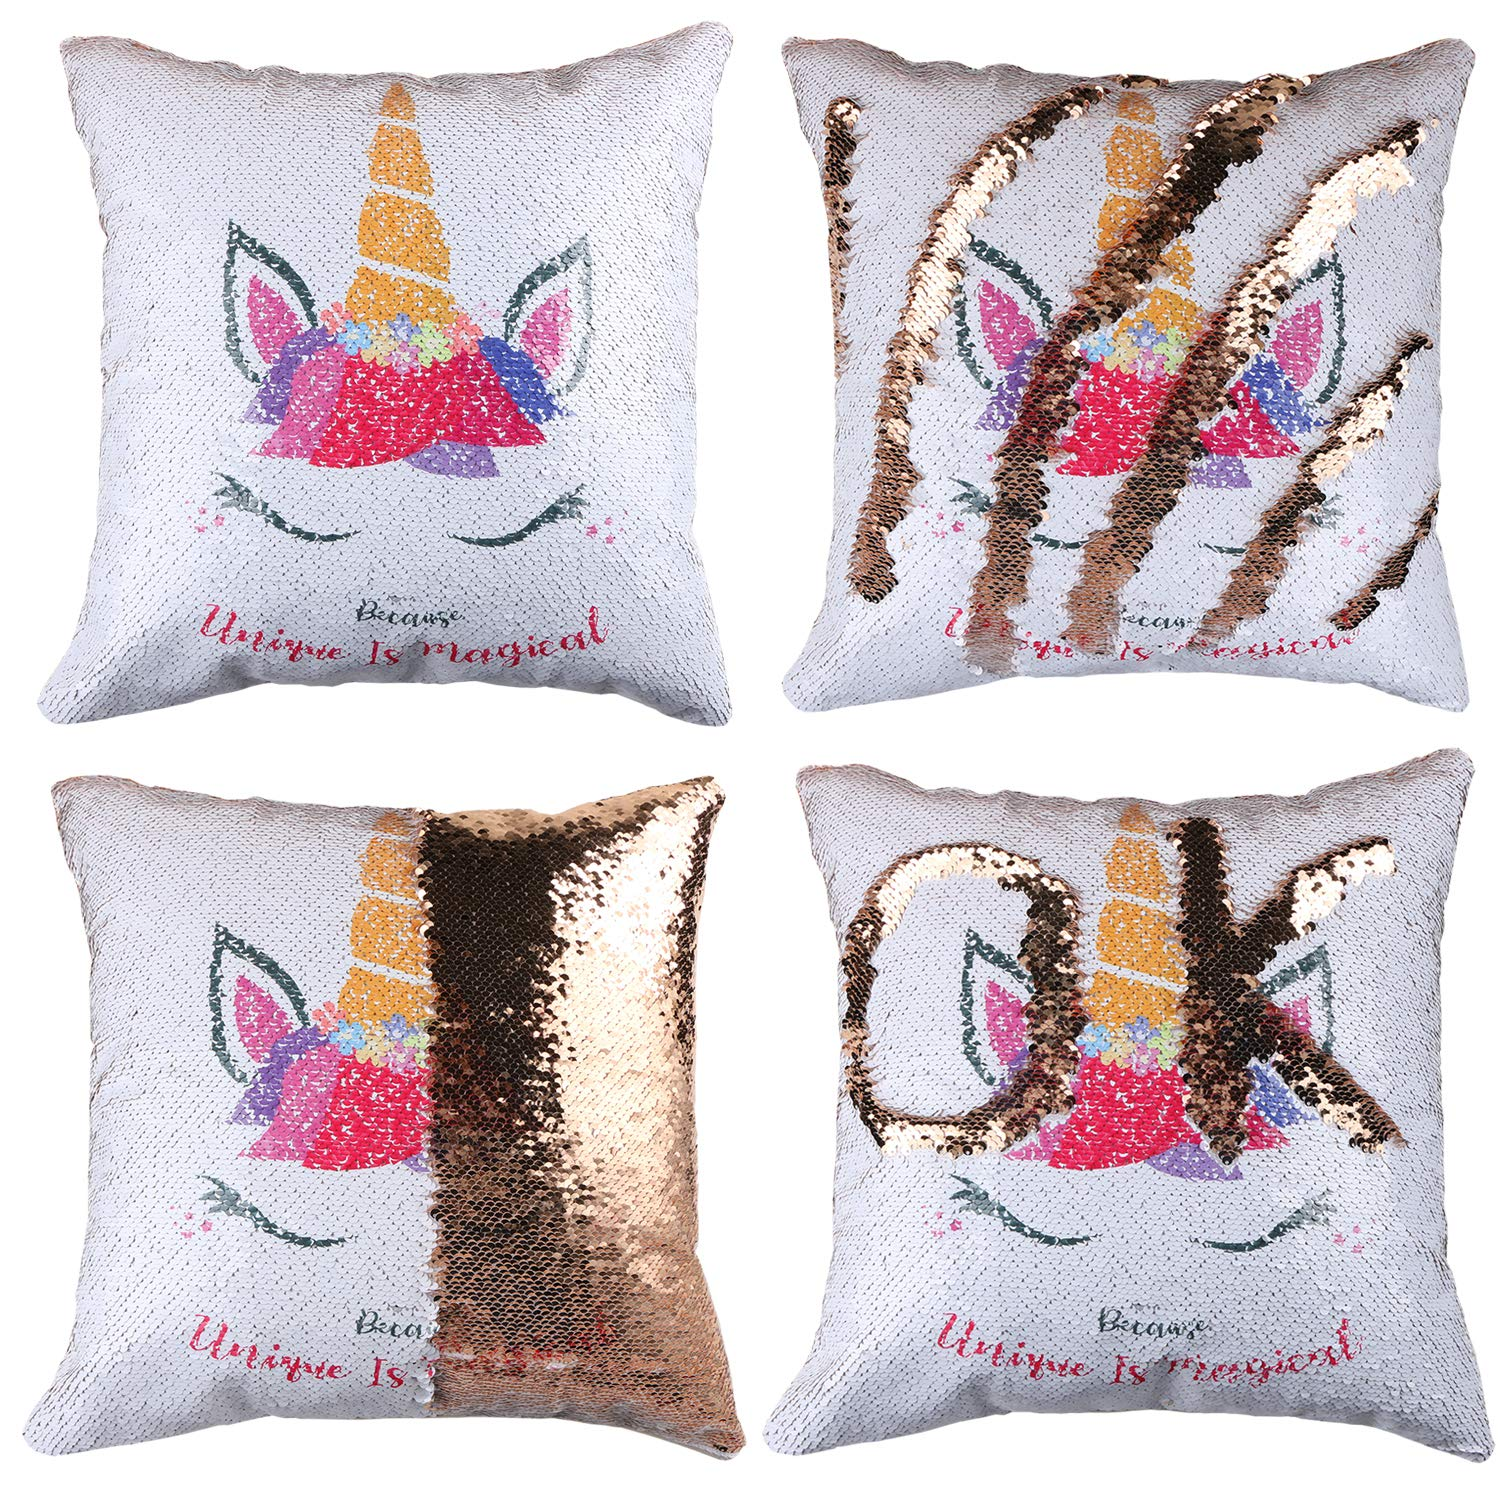 EVERMARKET Mermaid Throw Pillow Cover Magic Reversible Sequin Cover, Throw Cushion Pillow Case Decorative Pillow That Change Color (Unicorn - Gold Sequin)